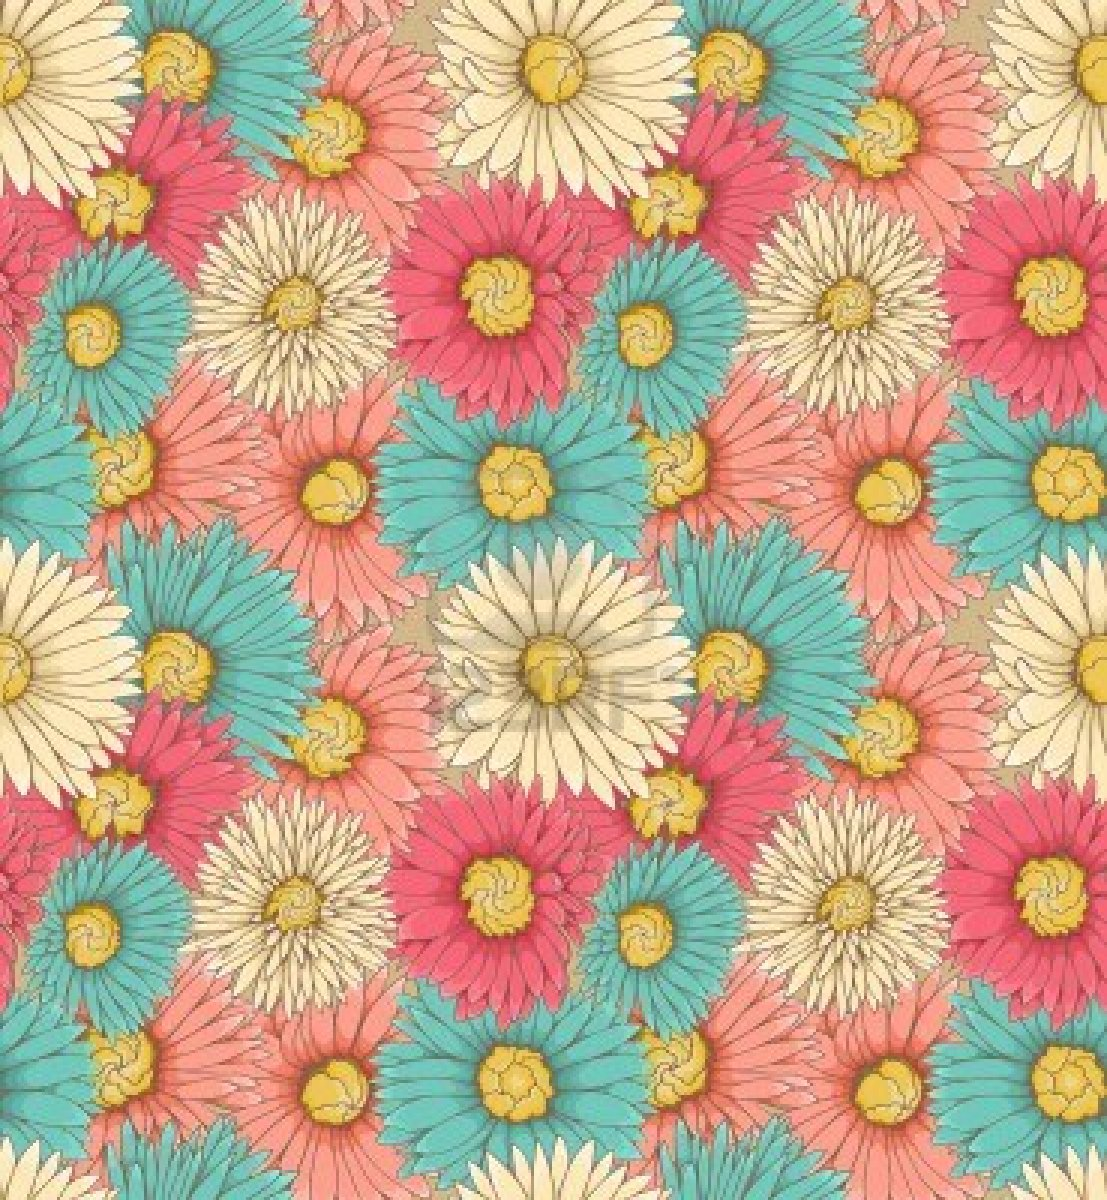 Floral Wallpapers Tumblr Iphone Vintage Fondos De Pantalla